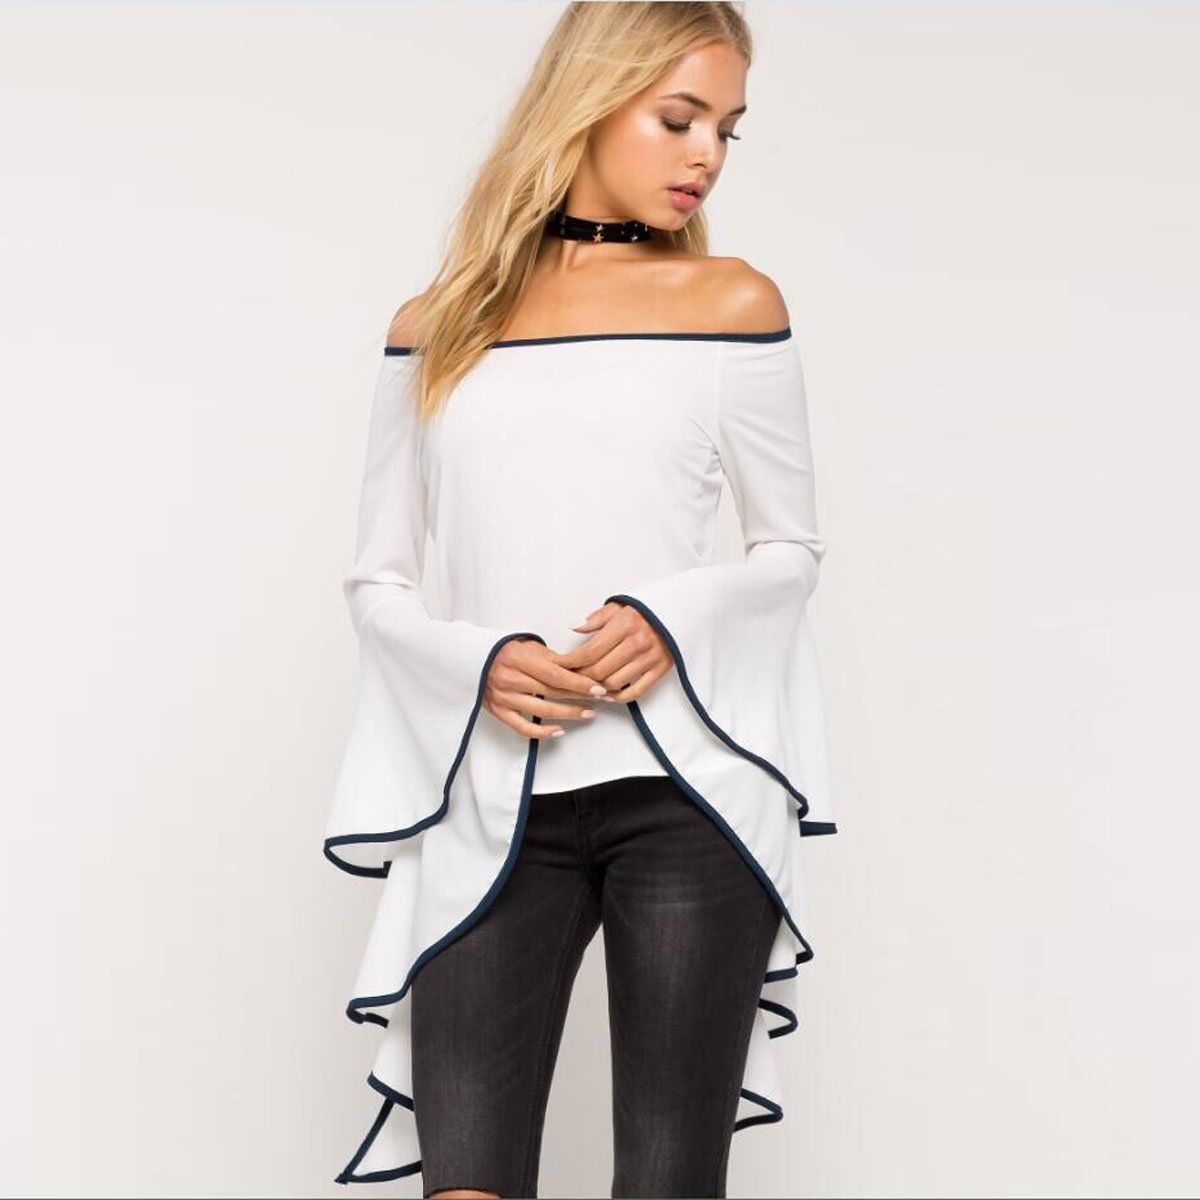 438cd394ab00 Women Sexy Long Sleeve Tops Off Shoulder Casual Blouse Loose Chiffon T- Shirts | eBay